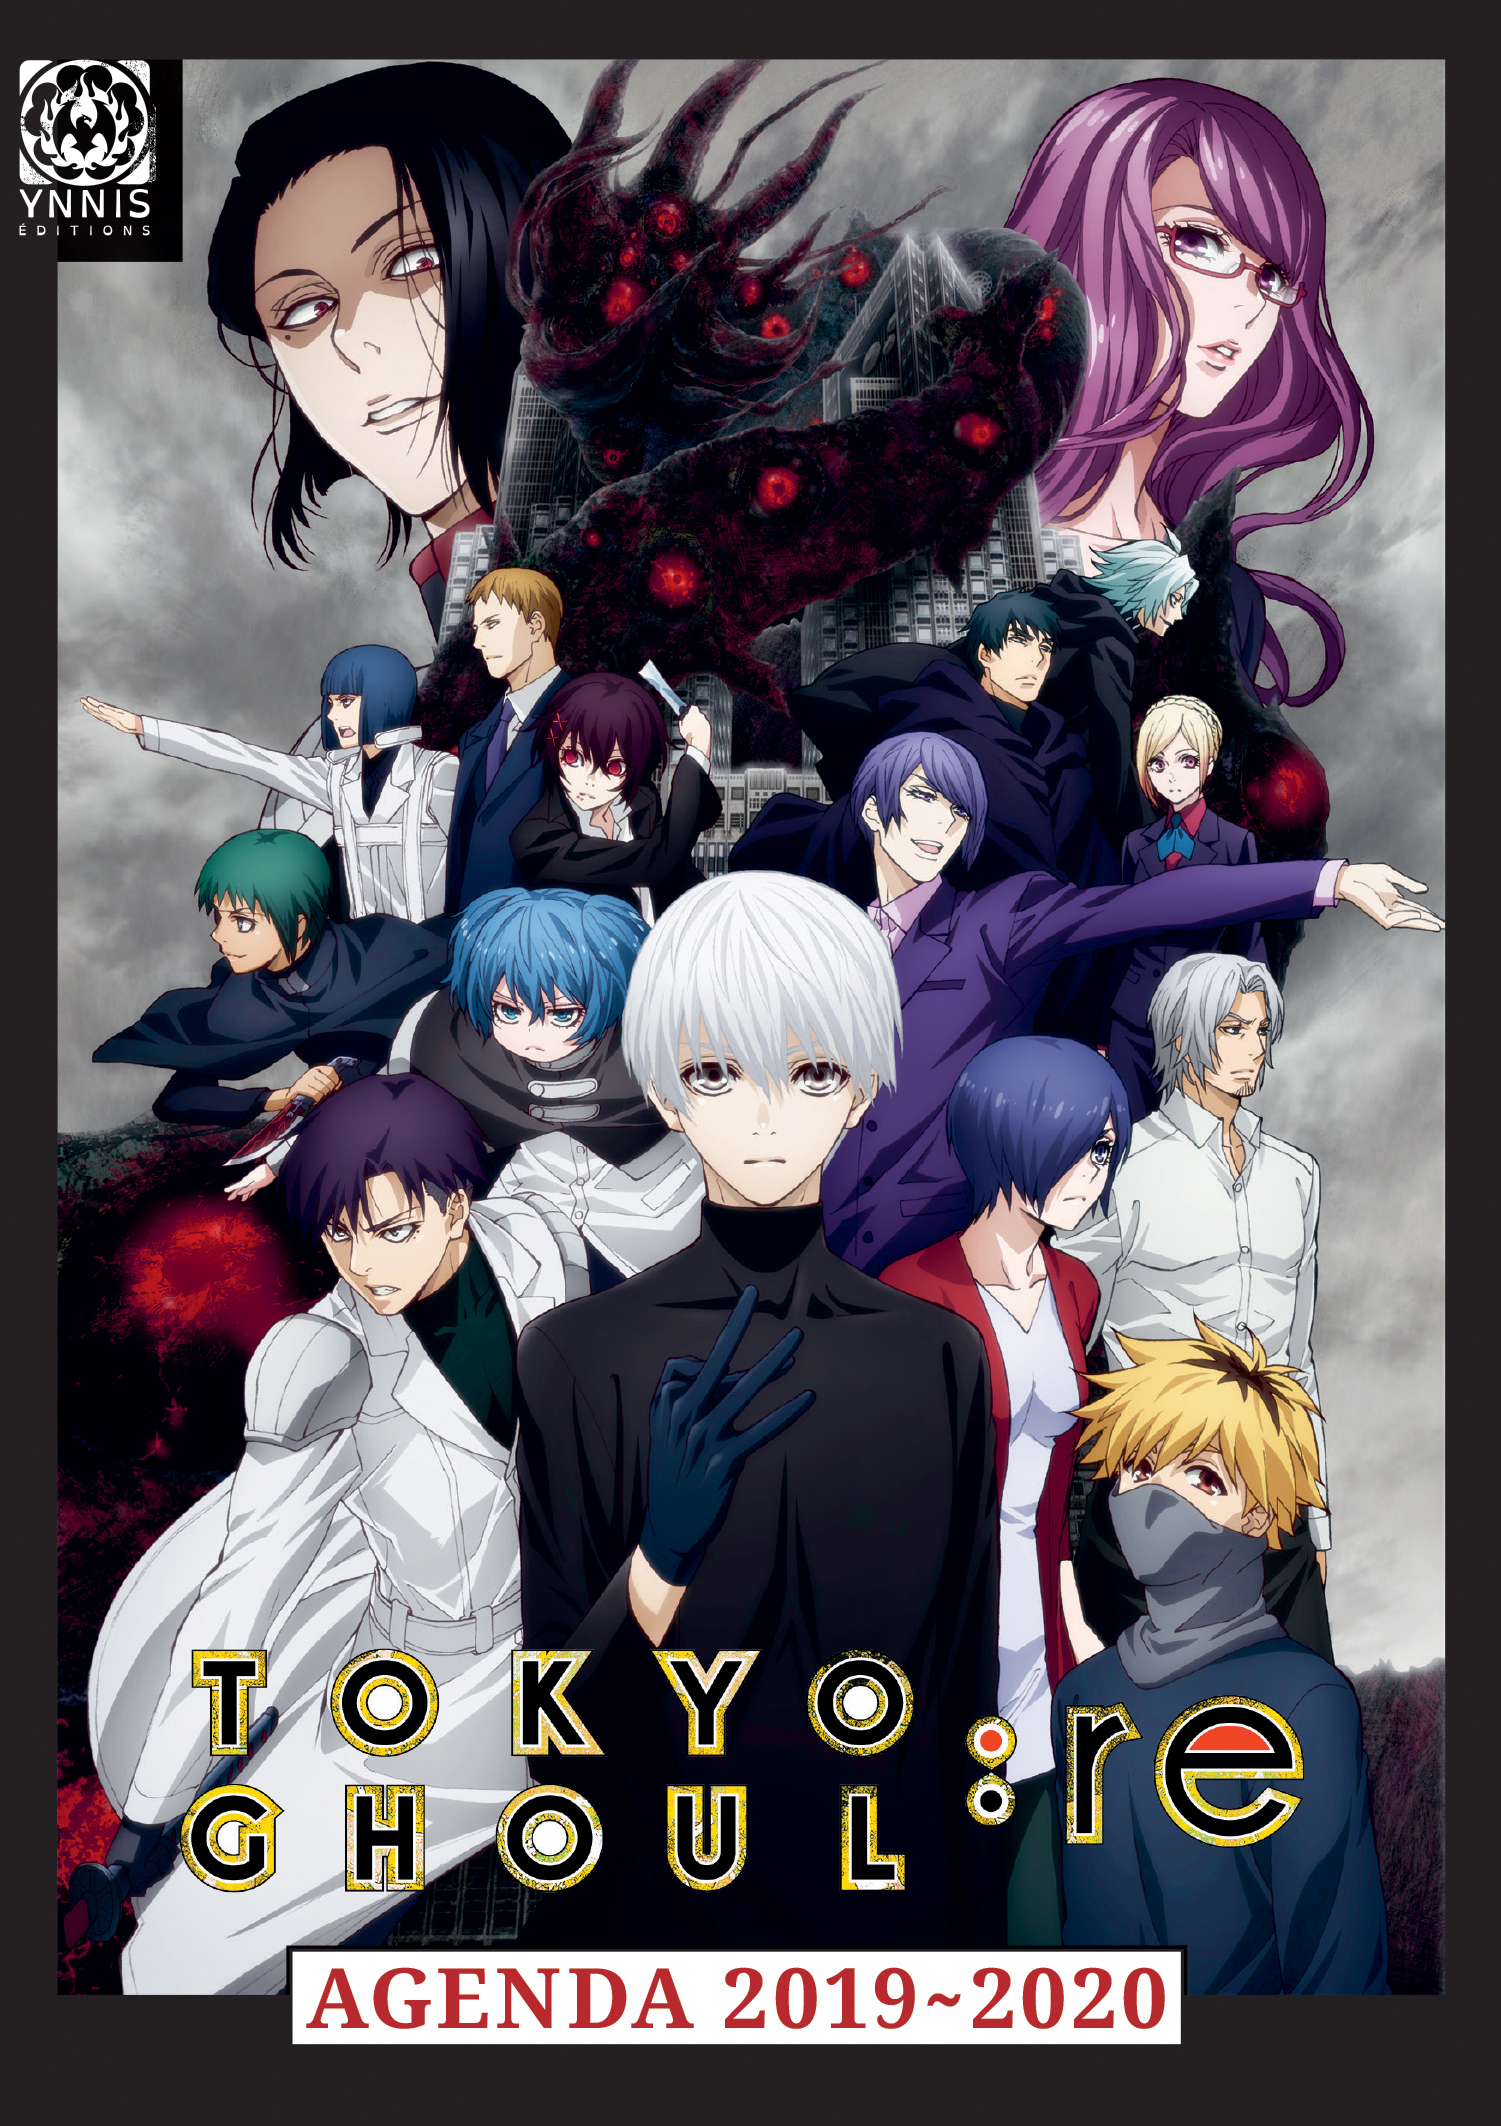 Calendrier Manga 2020.Tokyo Ghoul Re Agenda Scolaire 2019 2020 Ynnis Editions